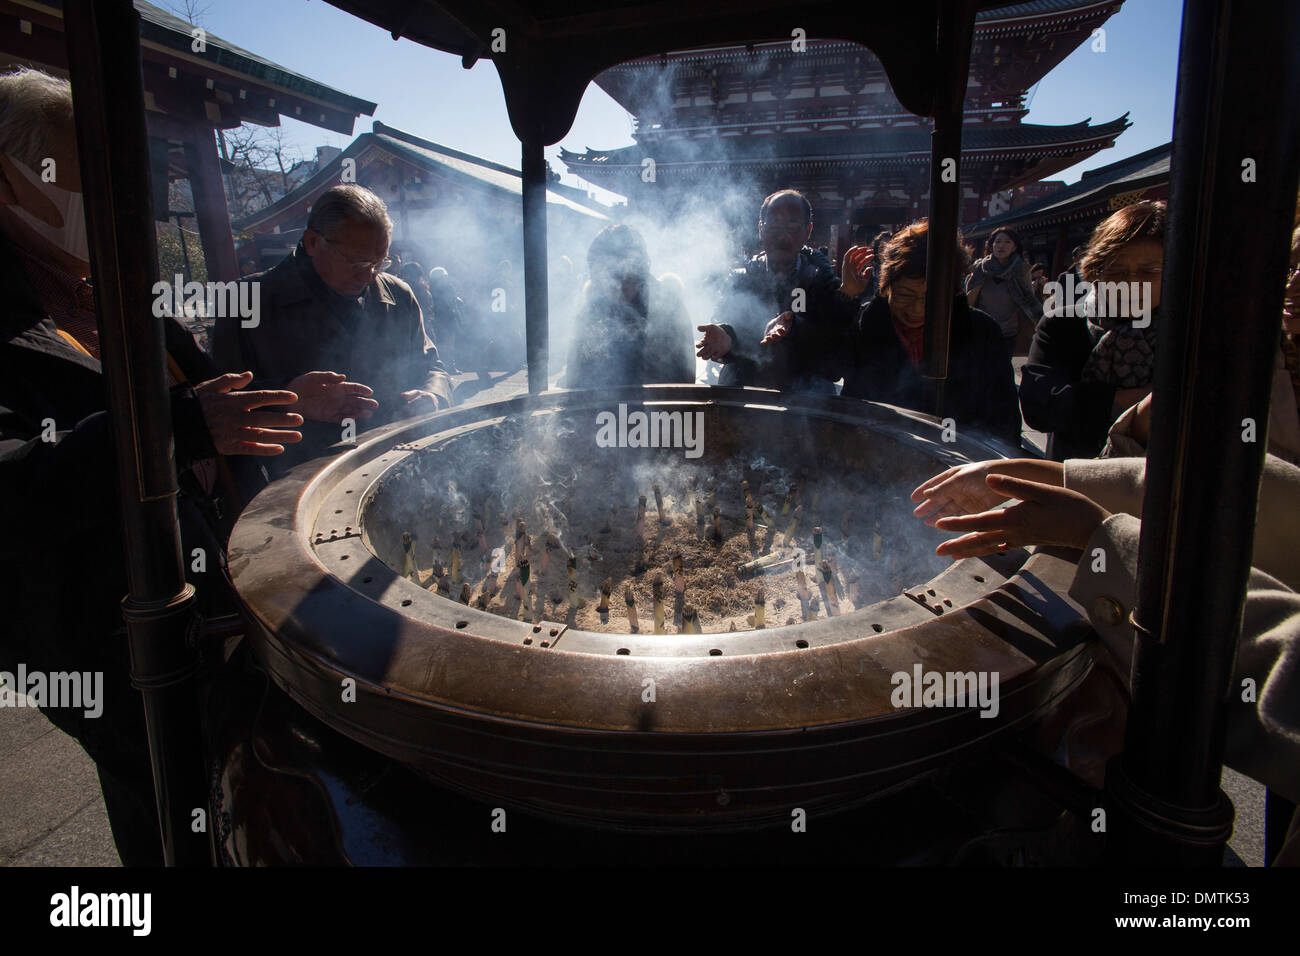 At Sensoji Japanese direct the smoke from incense over themselves especially to areas that need healing. - Stock Image